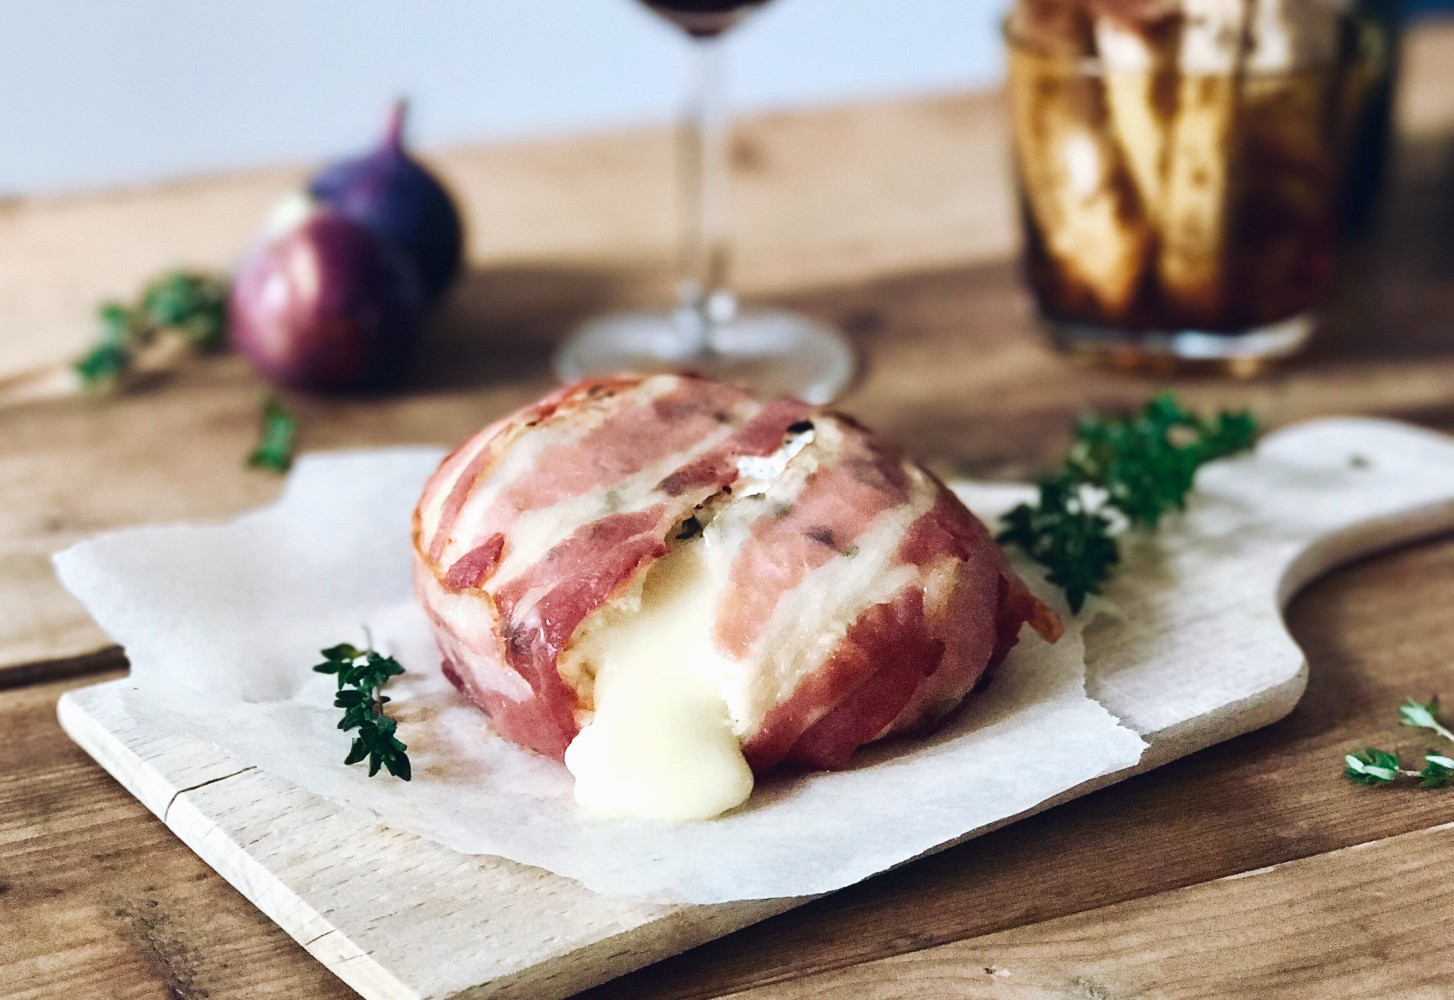 Kerst recept: Camembert in bacon pakketje